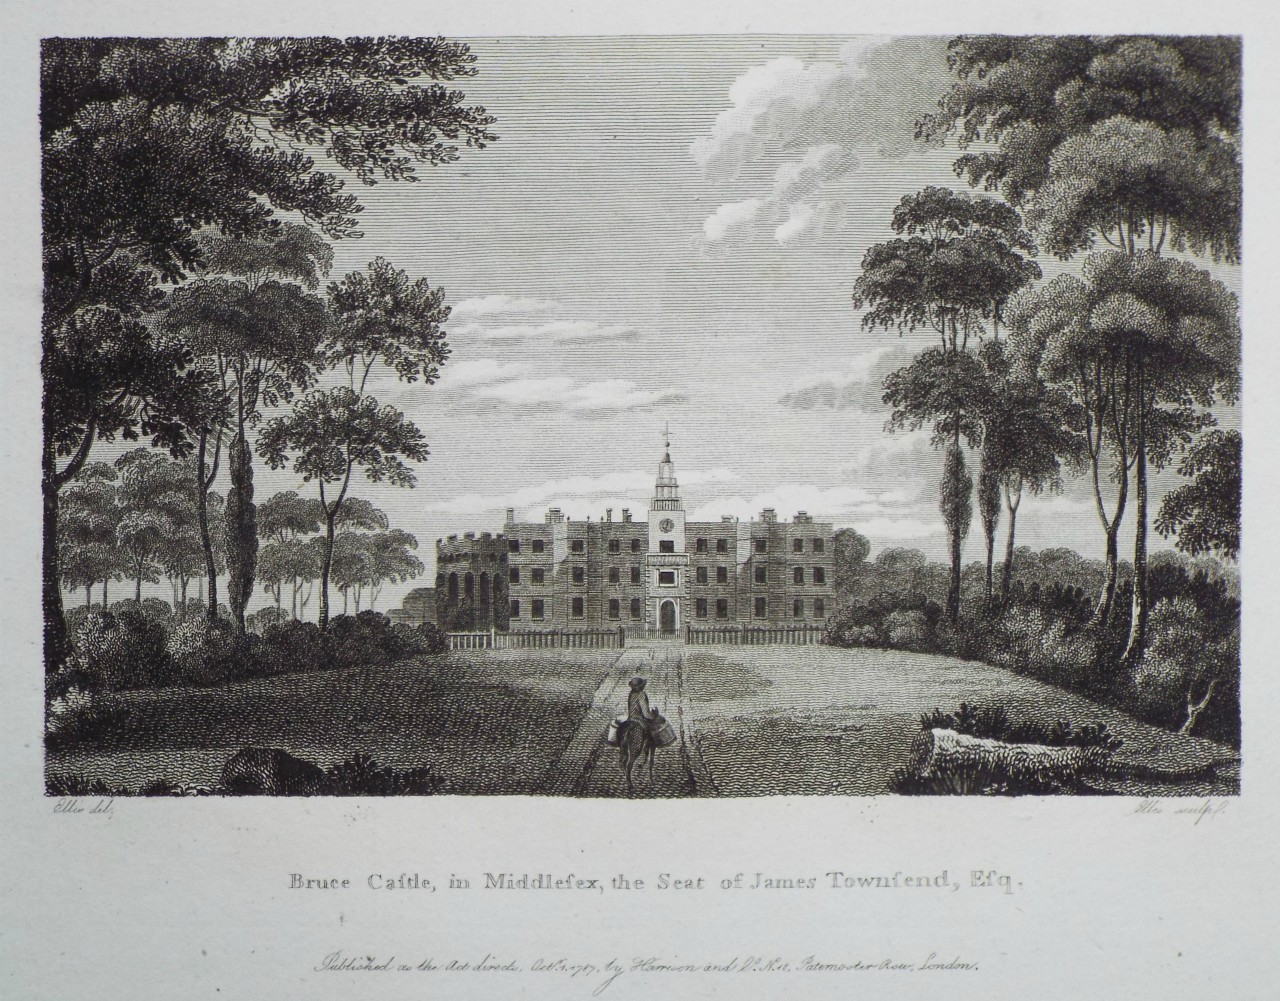 Print - Bruce Castle, in Middlesex, the Seat of James Townsend, Esqr. -